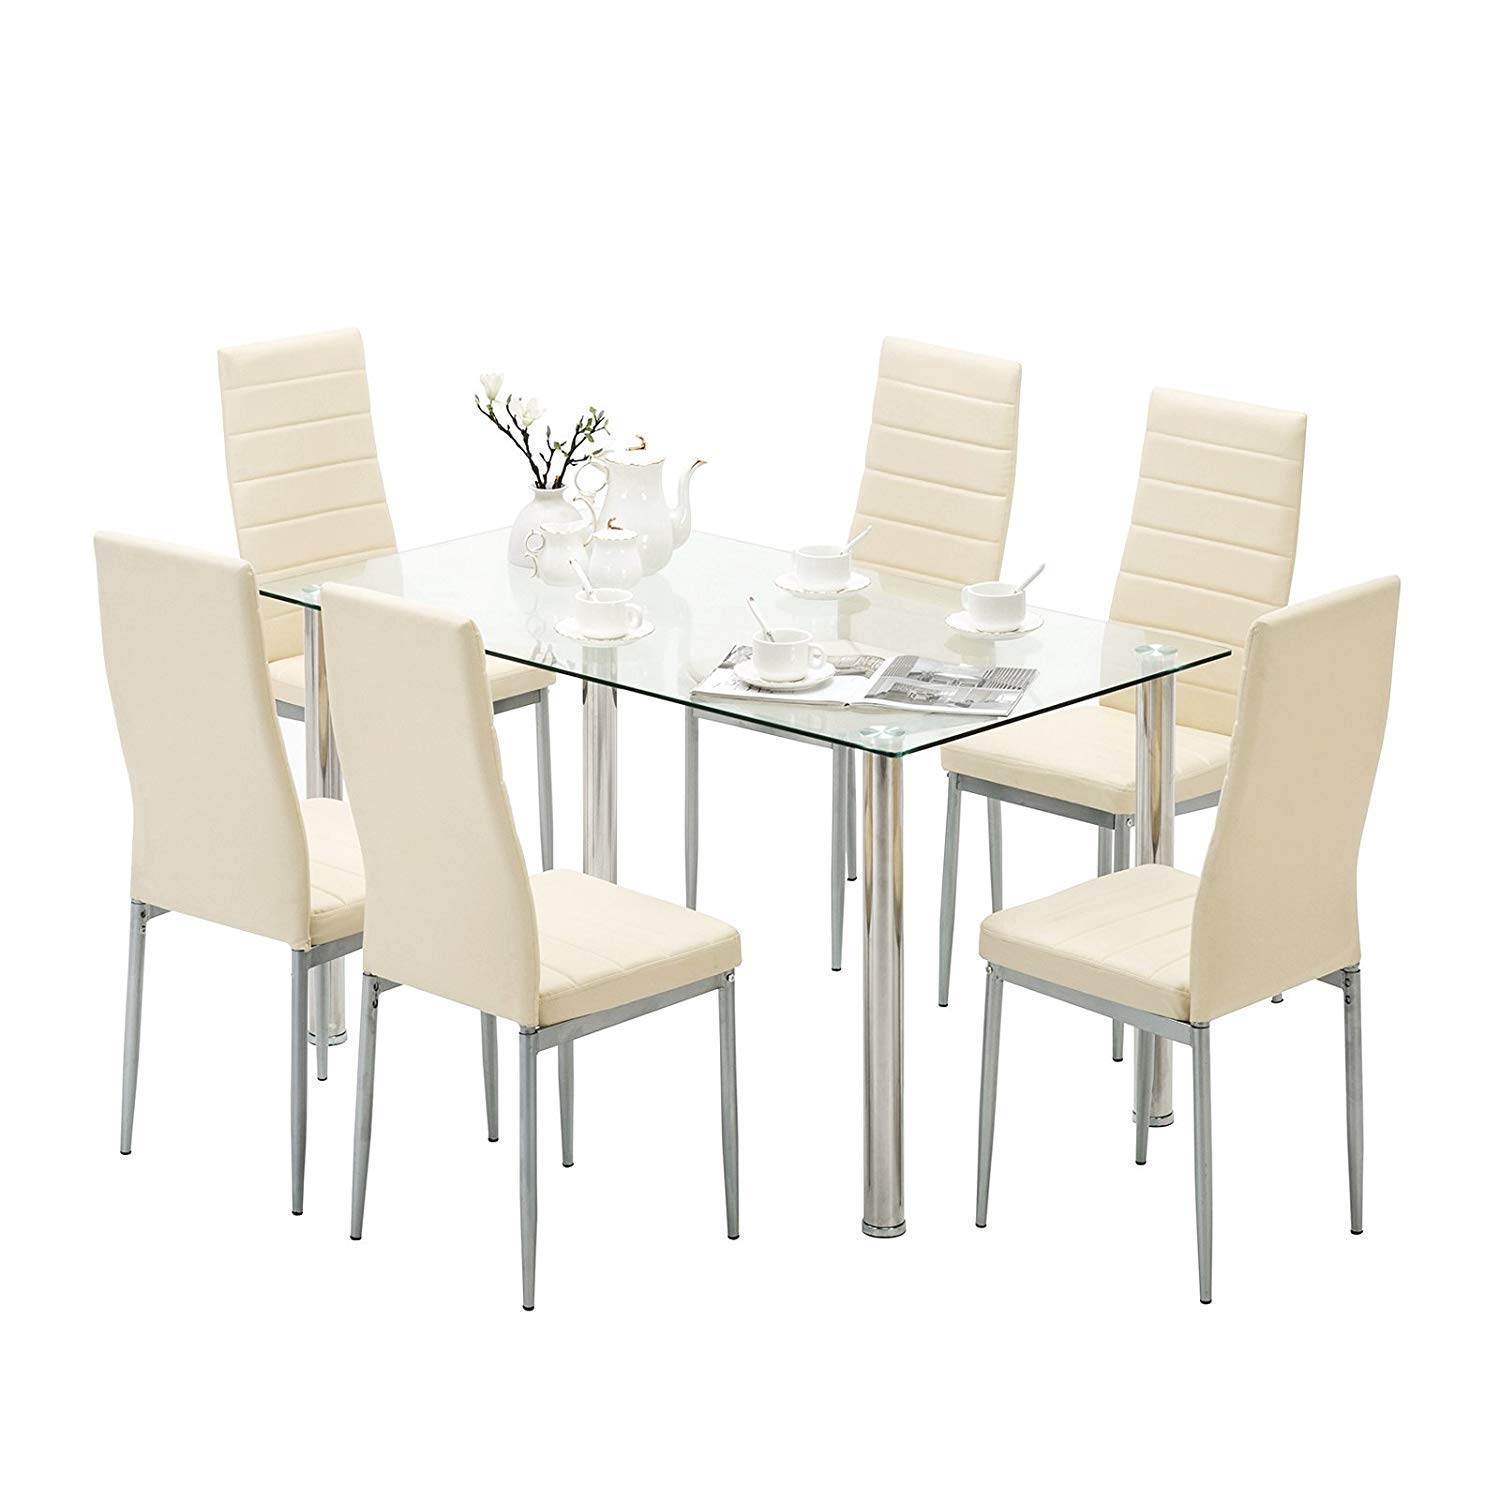 Mecor Dining Chairs Set of 6,Modern Dining Chairs High Back PU Leather with Steel Frame Legs Kitchen Room Chairs Light Yellow